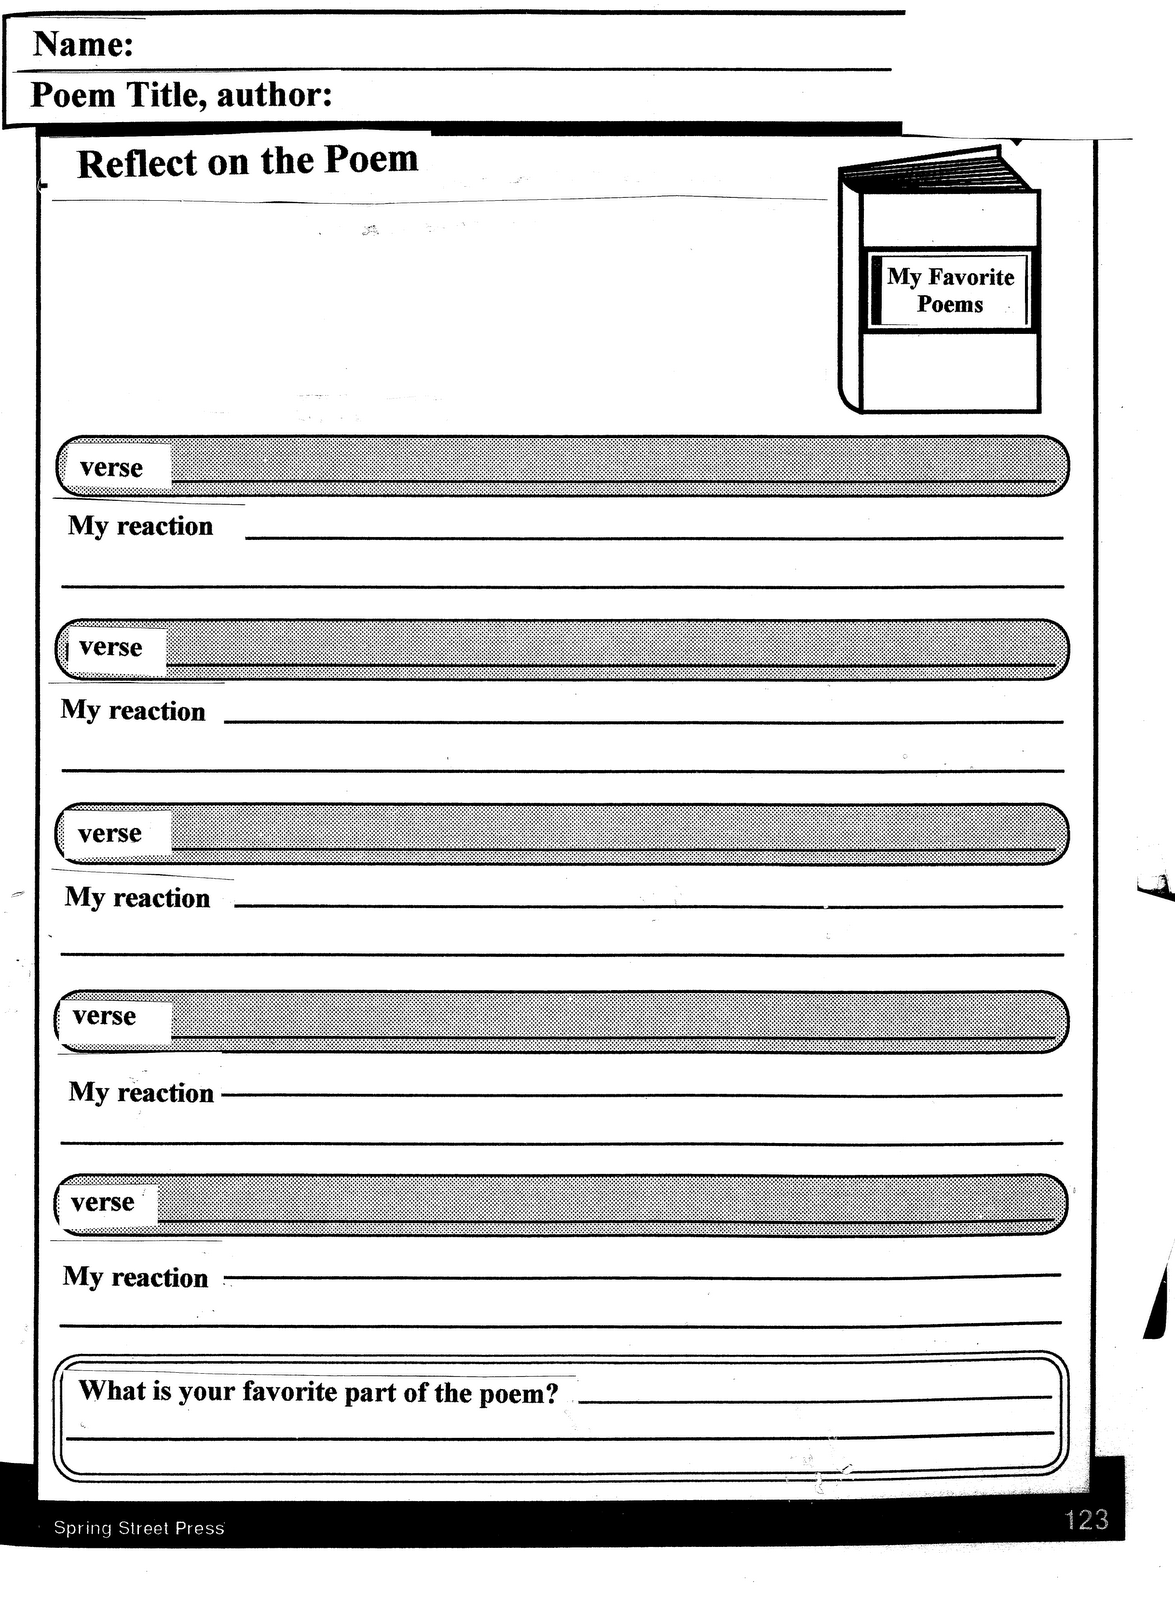 Printables Analyzing A Poem Worksheet literacy philosphy analyze poetic elements grades 4 8 intermediate advanced stages first the reader identifies rhyming words and then makes comments about rhyme